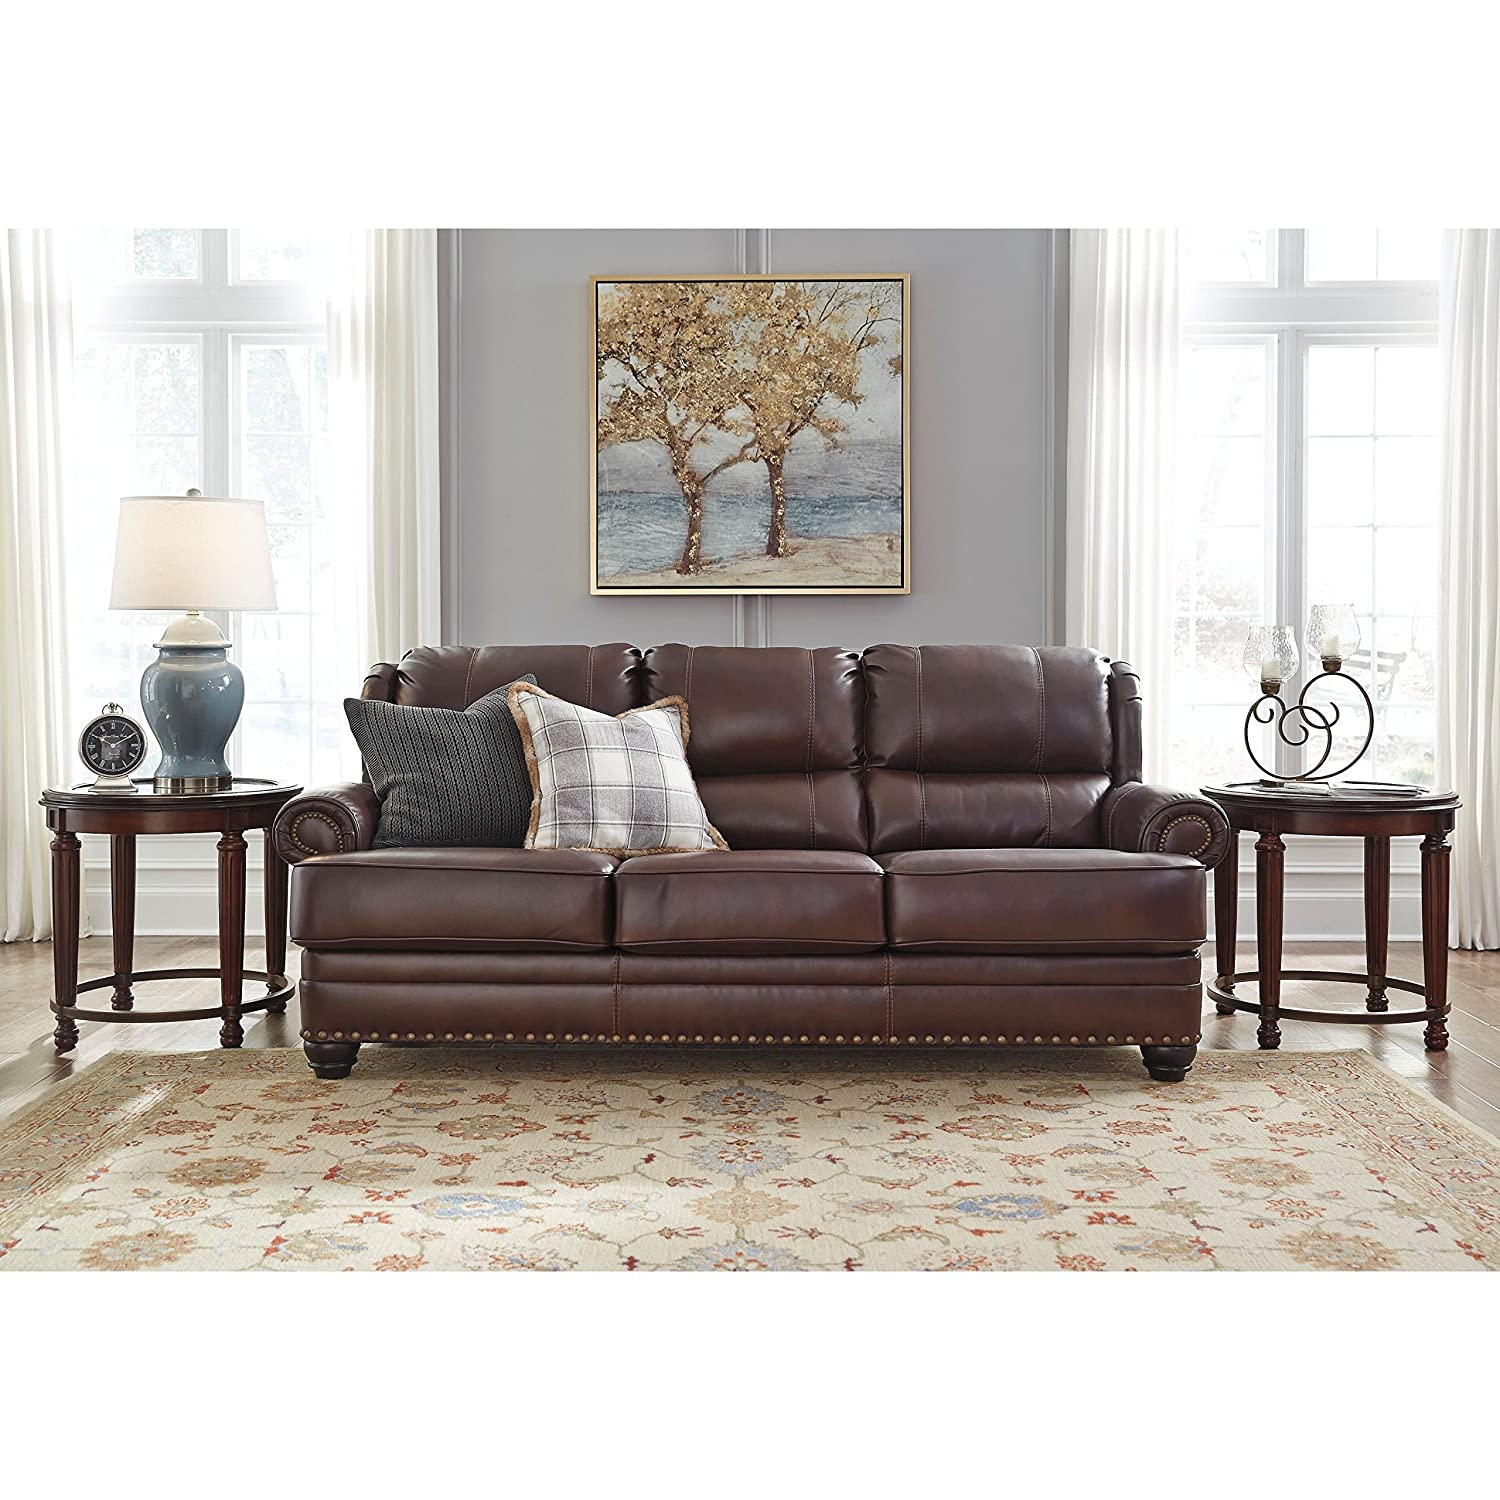 Amazon.com: Ashley Furniture Signature Design - Glengary Sofa - Traditional  Style Couch - Chestnut: Kitchen & Dining